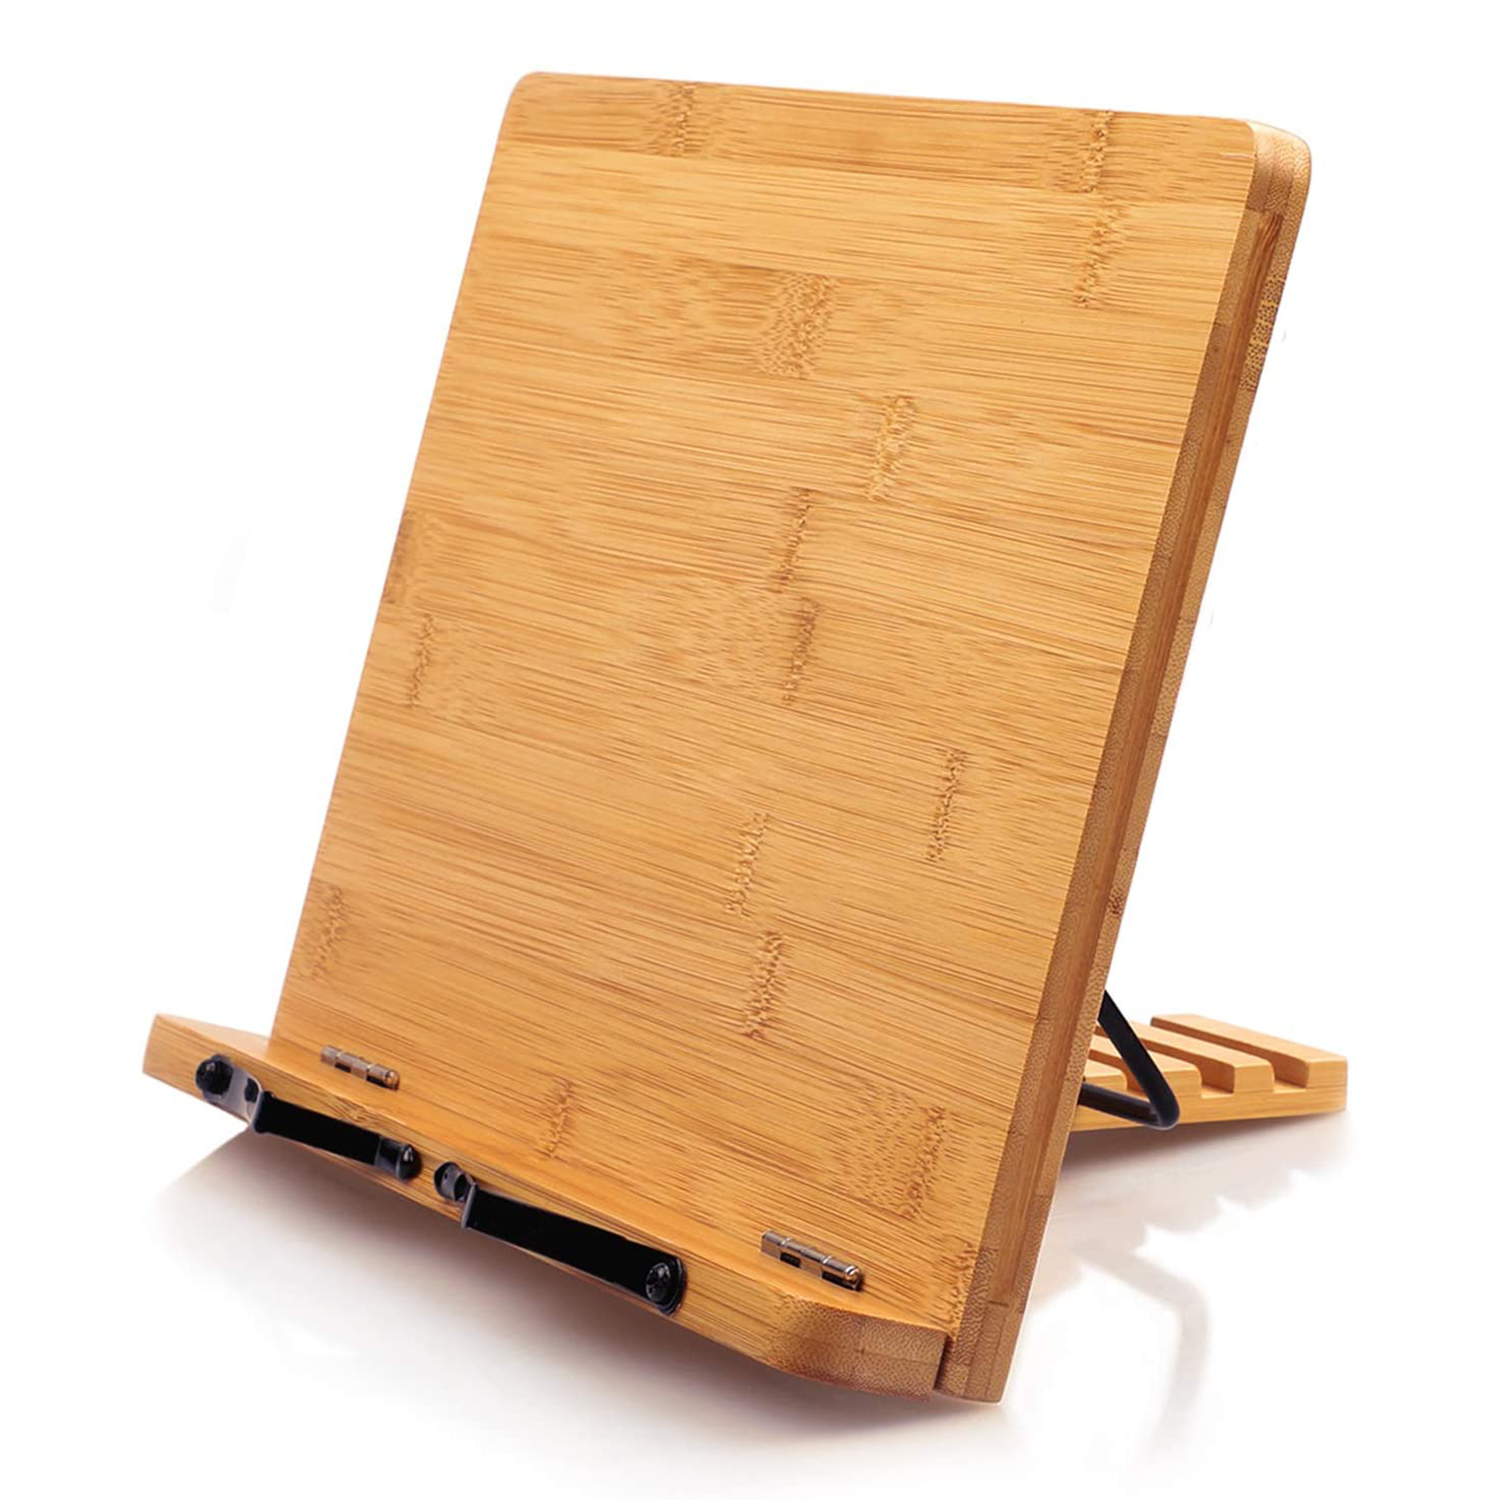 Bamboo Book Stand, Cookbook Holder Desk Reading with 5 Adjustable Height